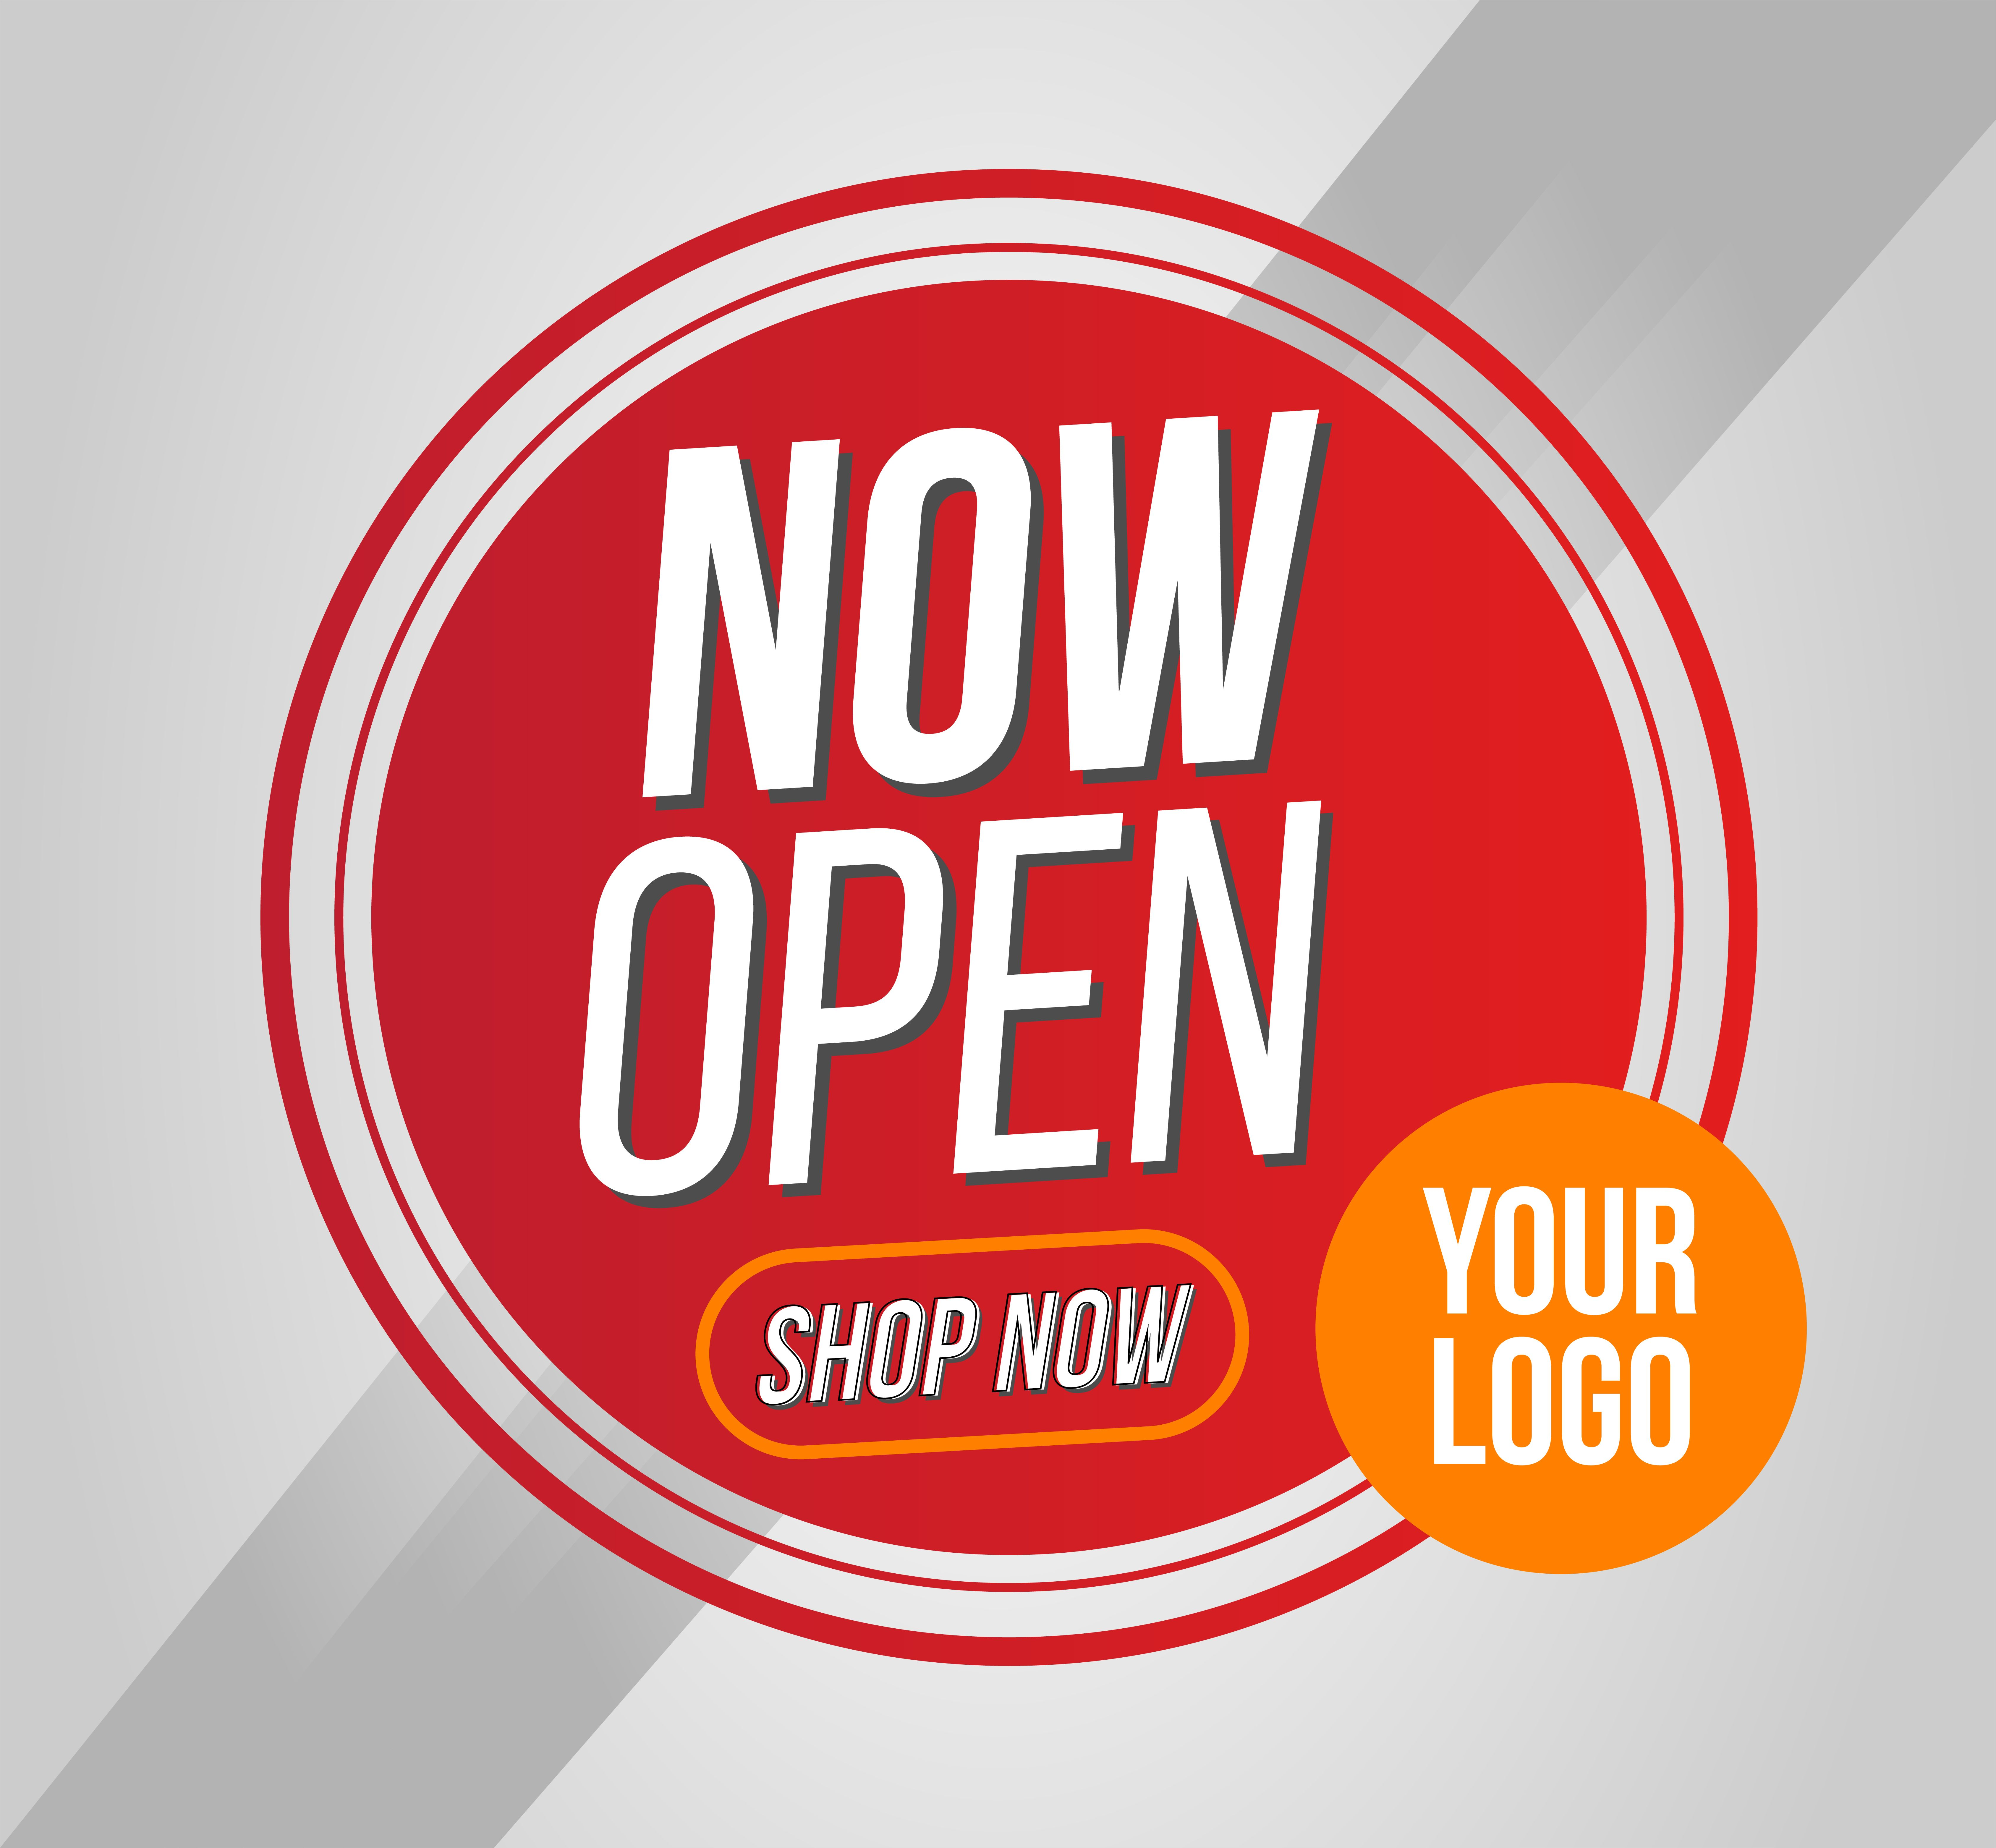 Now Open Shop Or New Store Red And Orange Color Sign On White Background Template Design For Opening Event C In 2021 Banner Template Design Open Shop Medical Wallpaper